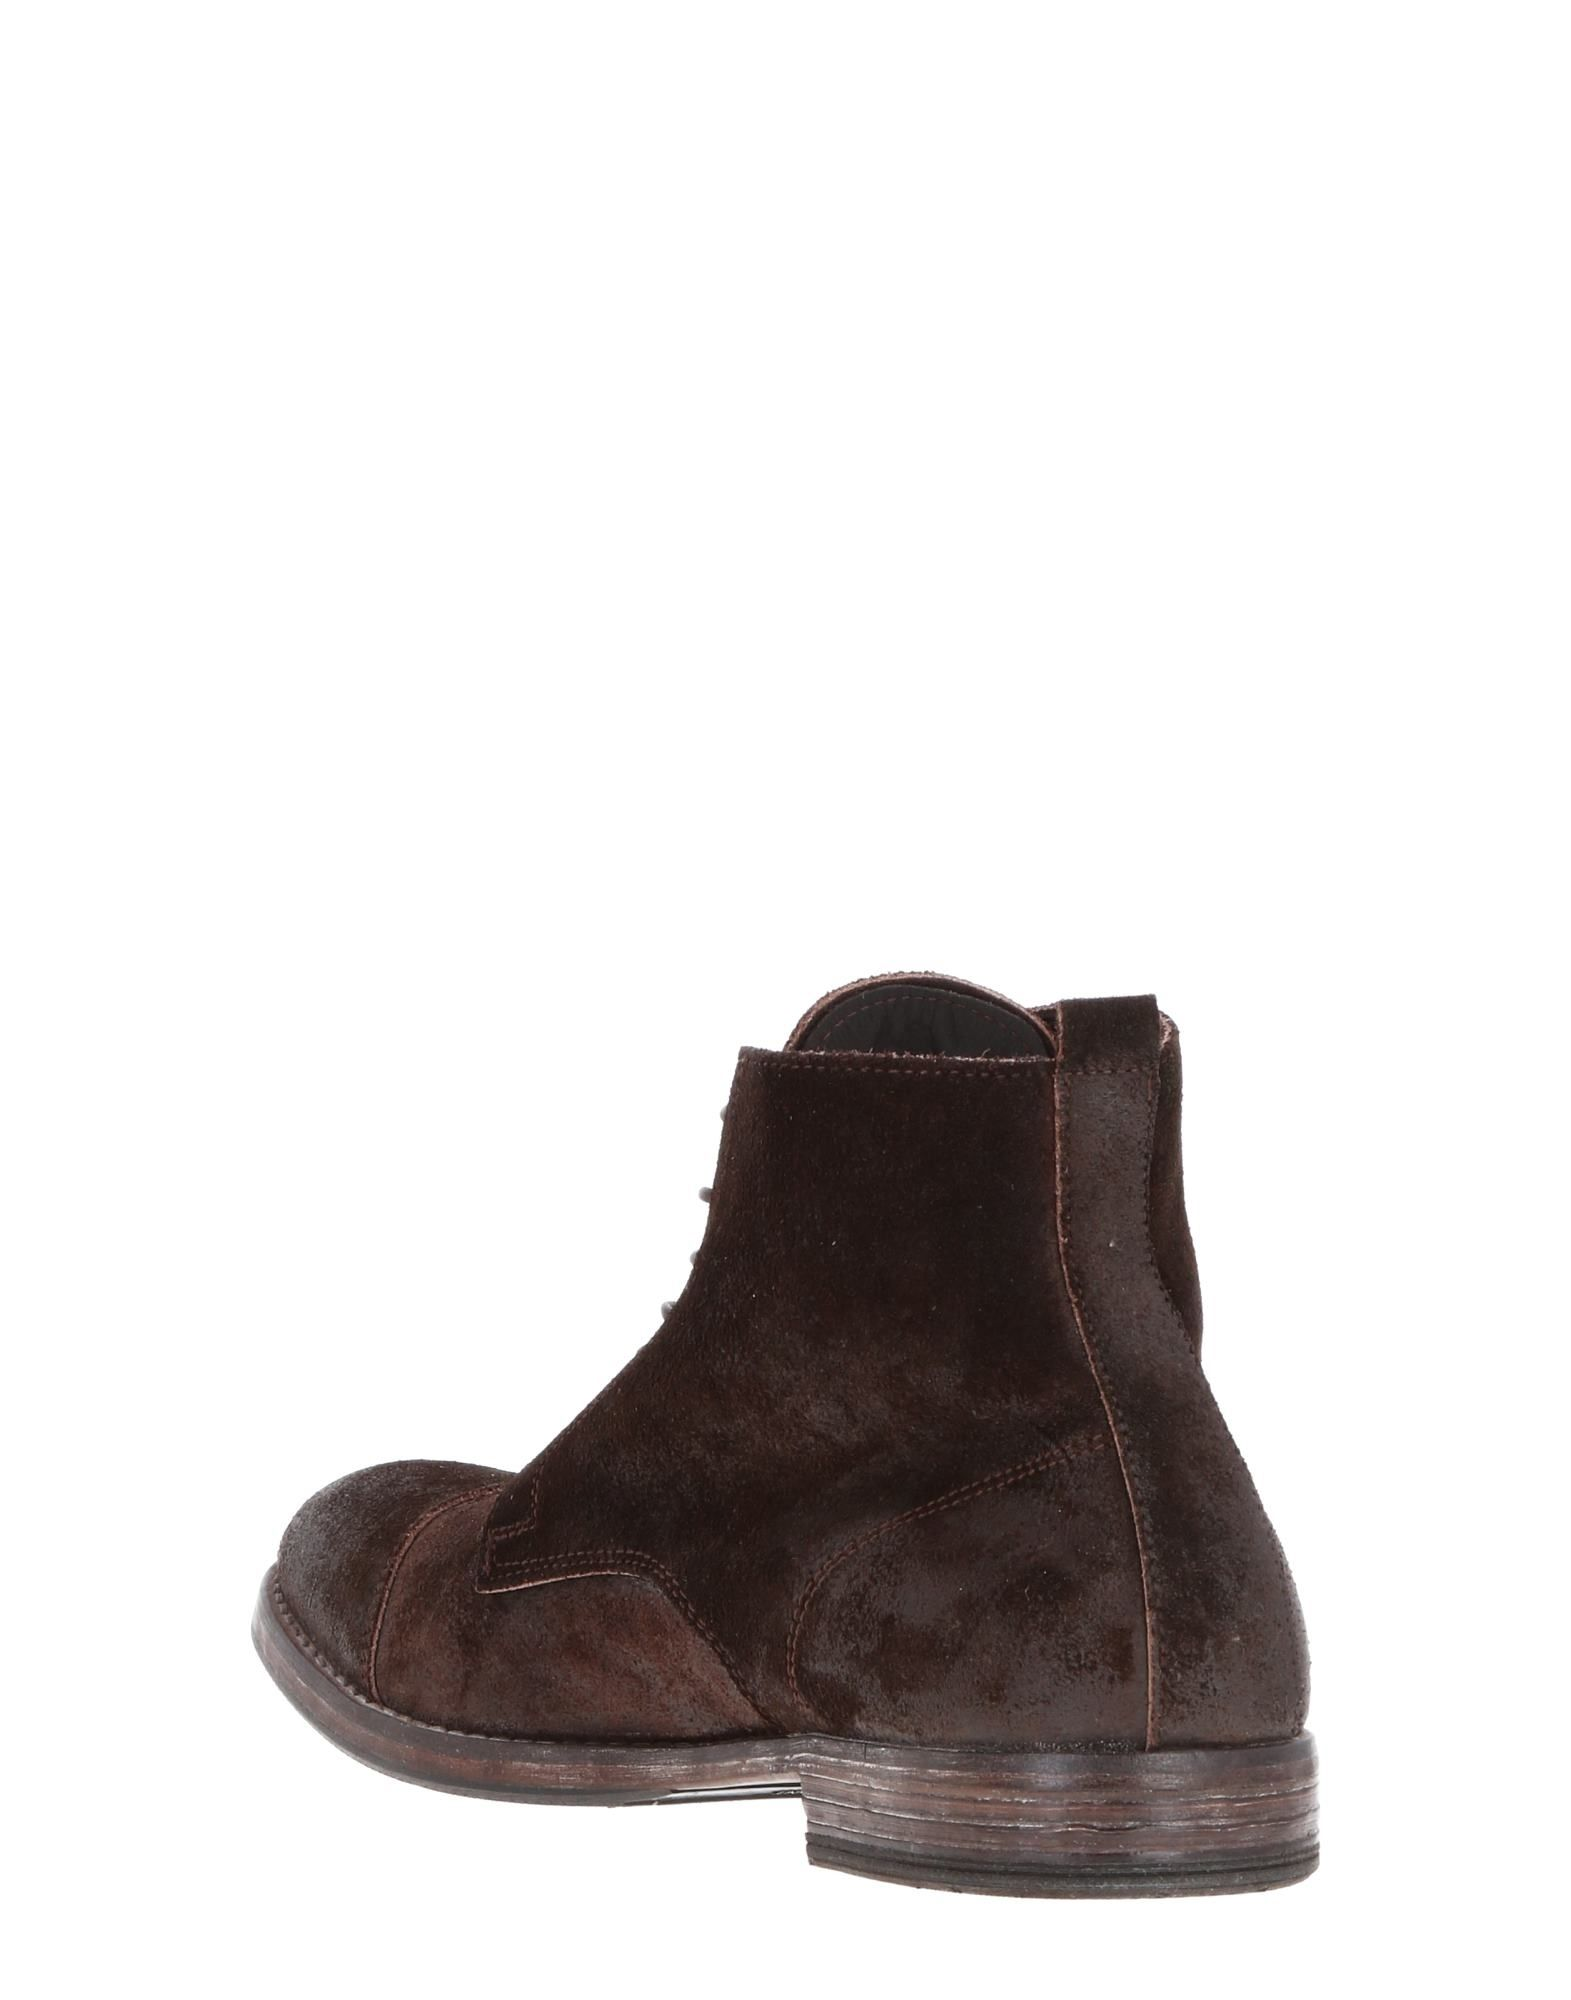 Moma Boots  - Men Moma Boots online on  Boots Canada - 11516611CQ a41b02